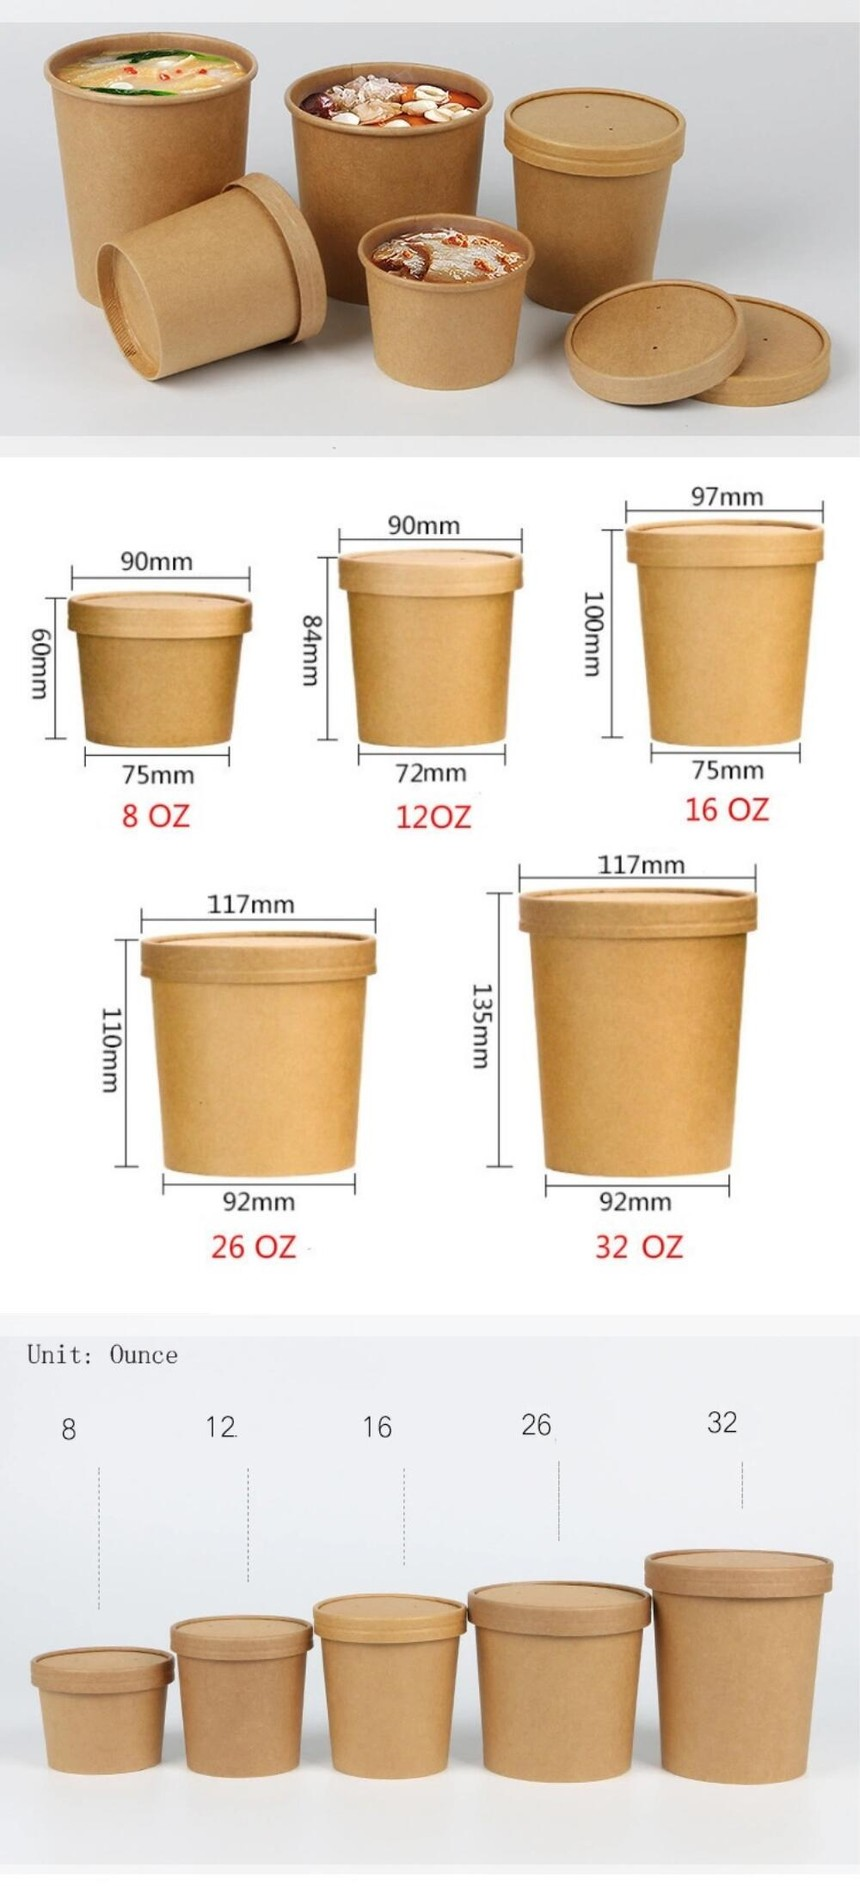 hot soup cups and lid.jpg